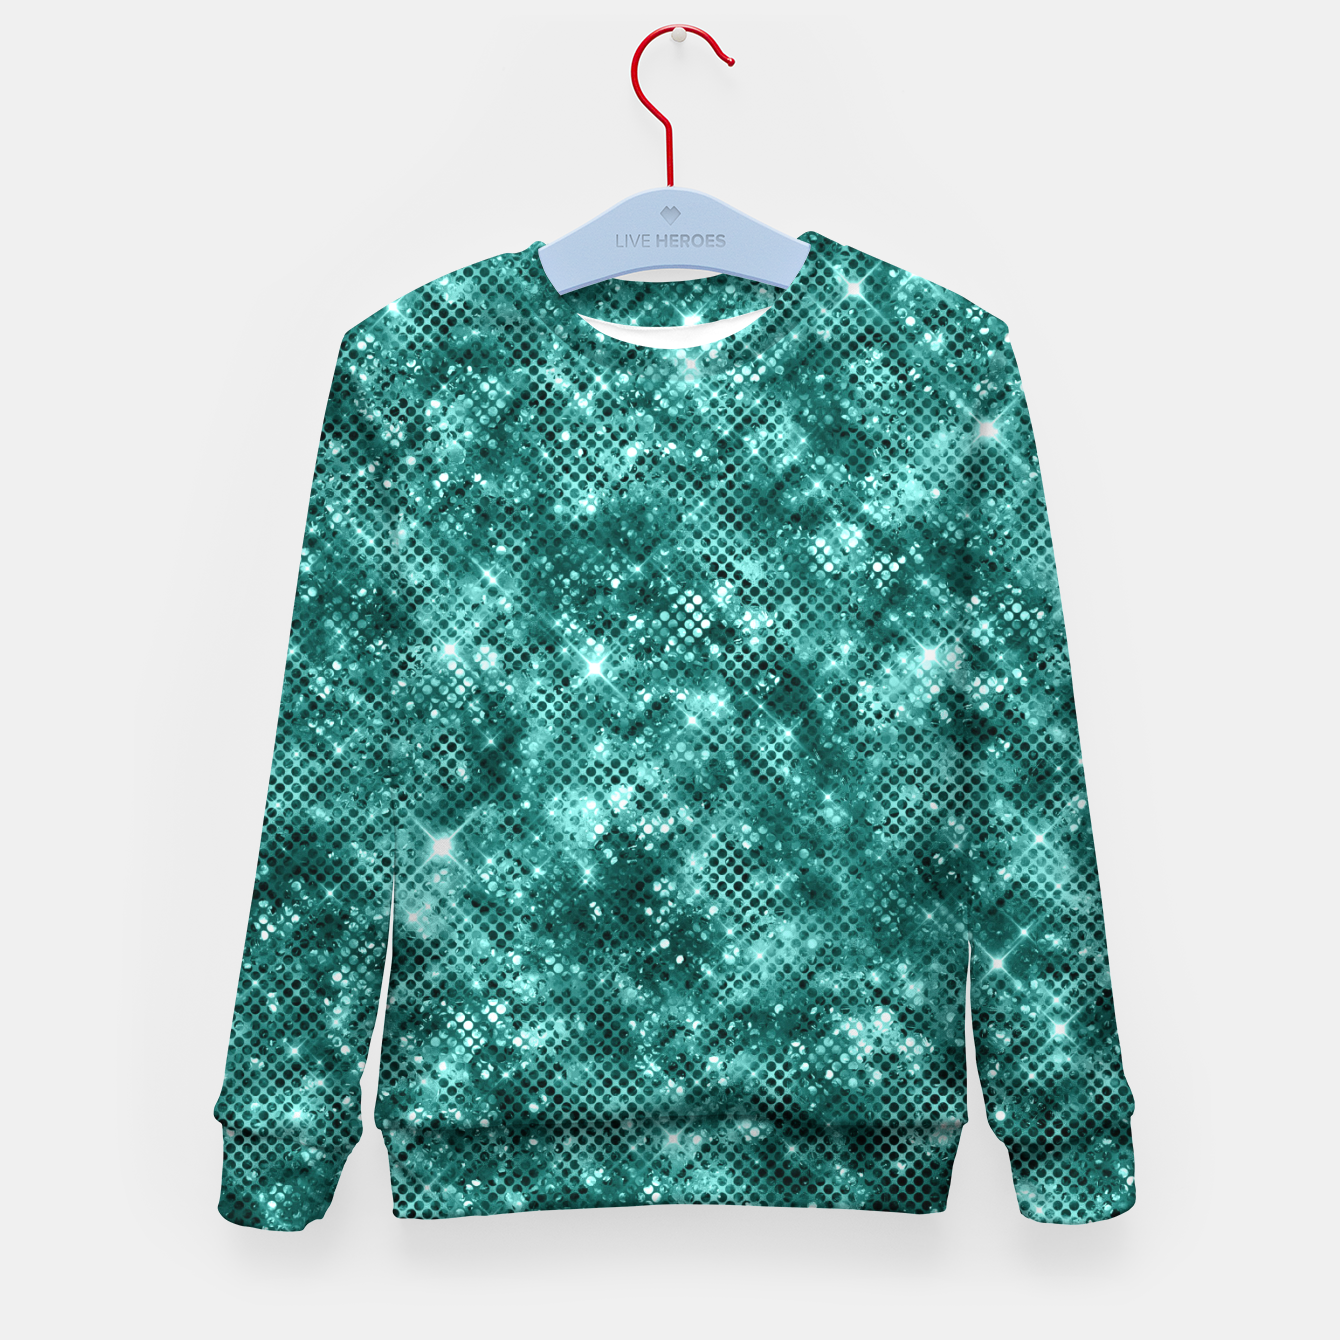 Zdjęcie Glamorous Turquoise Sparkle Dots Girly Elegant Chic Kid's sweater - Live Heroes